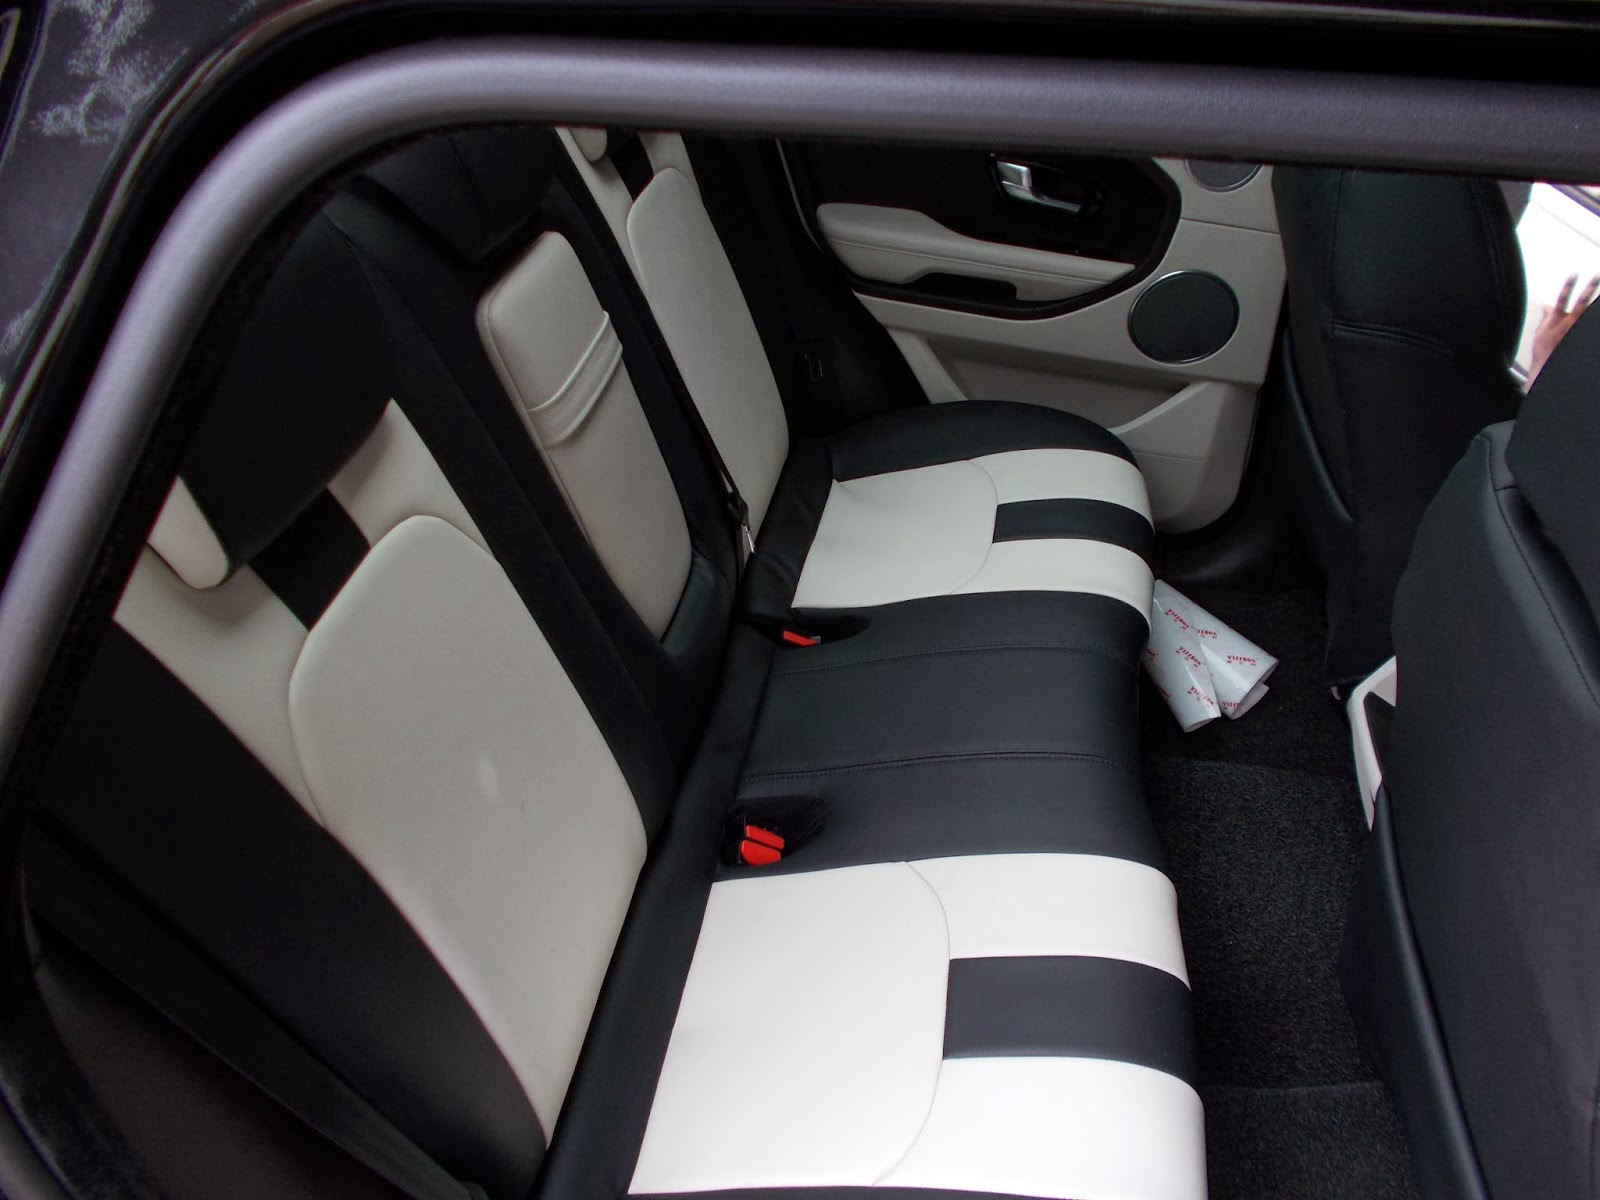 Range Rover Evoque 2013 Leather Seat Covers With Full